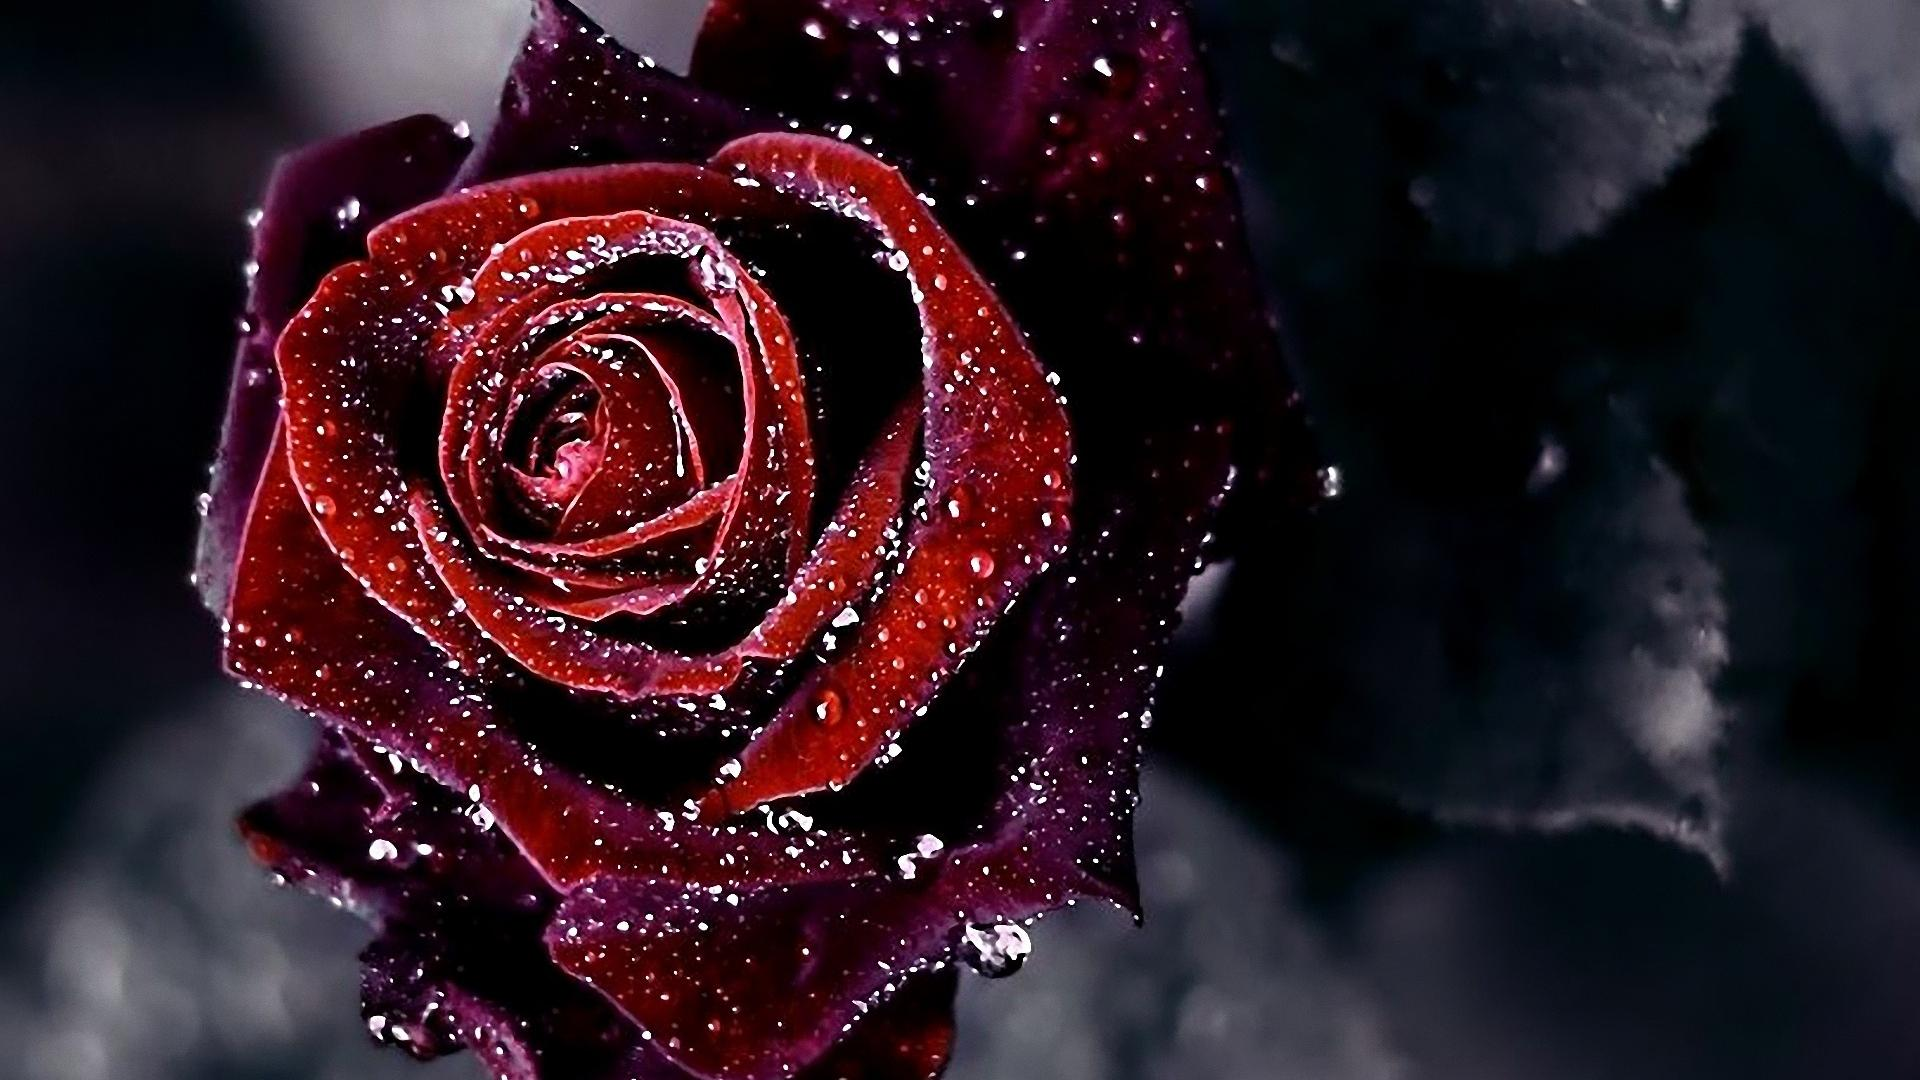 red-flowers-hd-wallpapers-rose-backgrounds-for-desktop-03